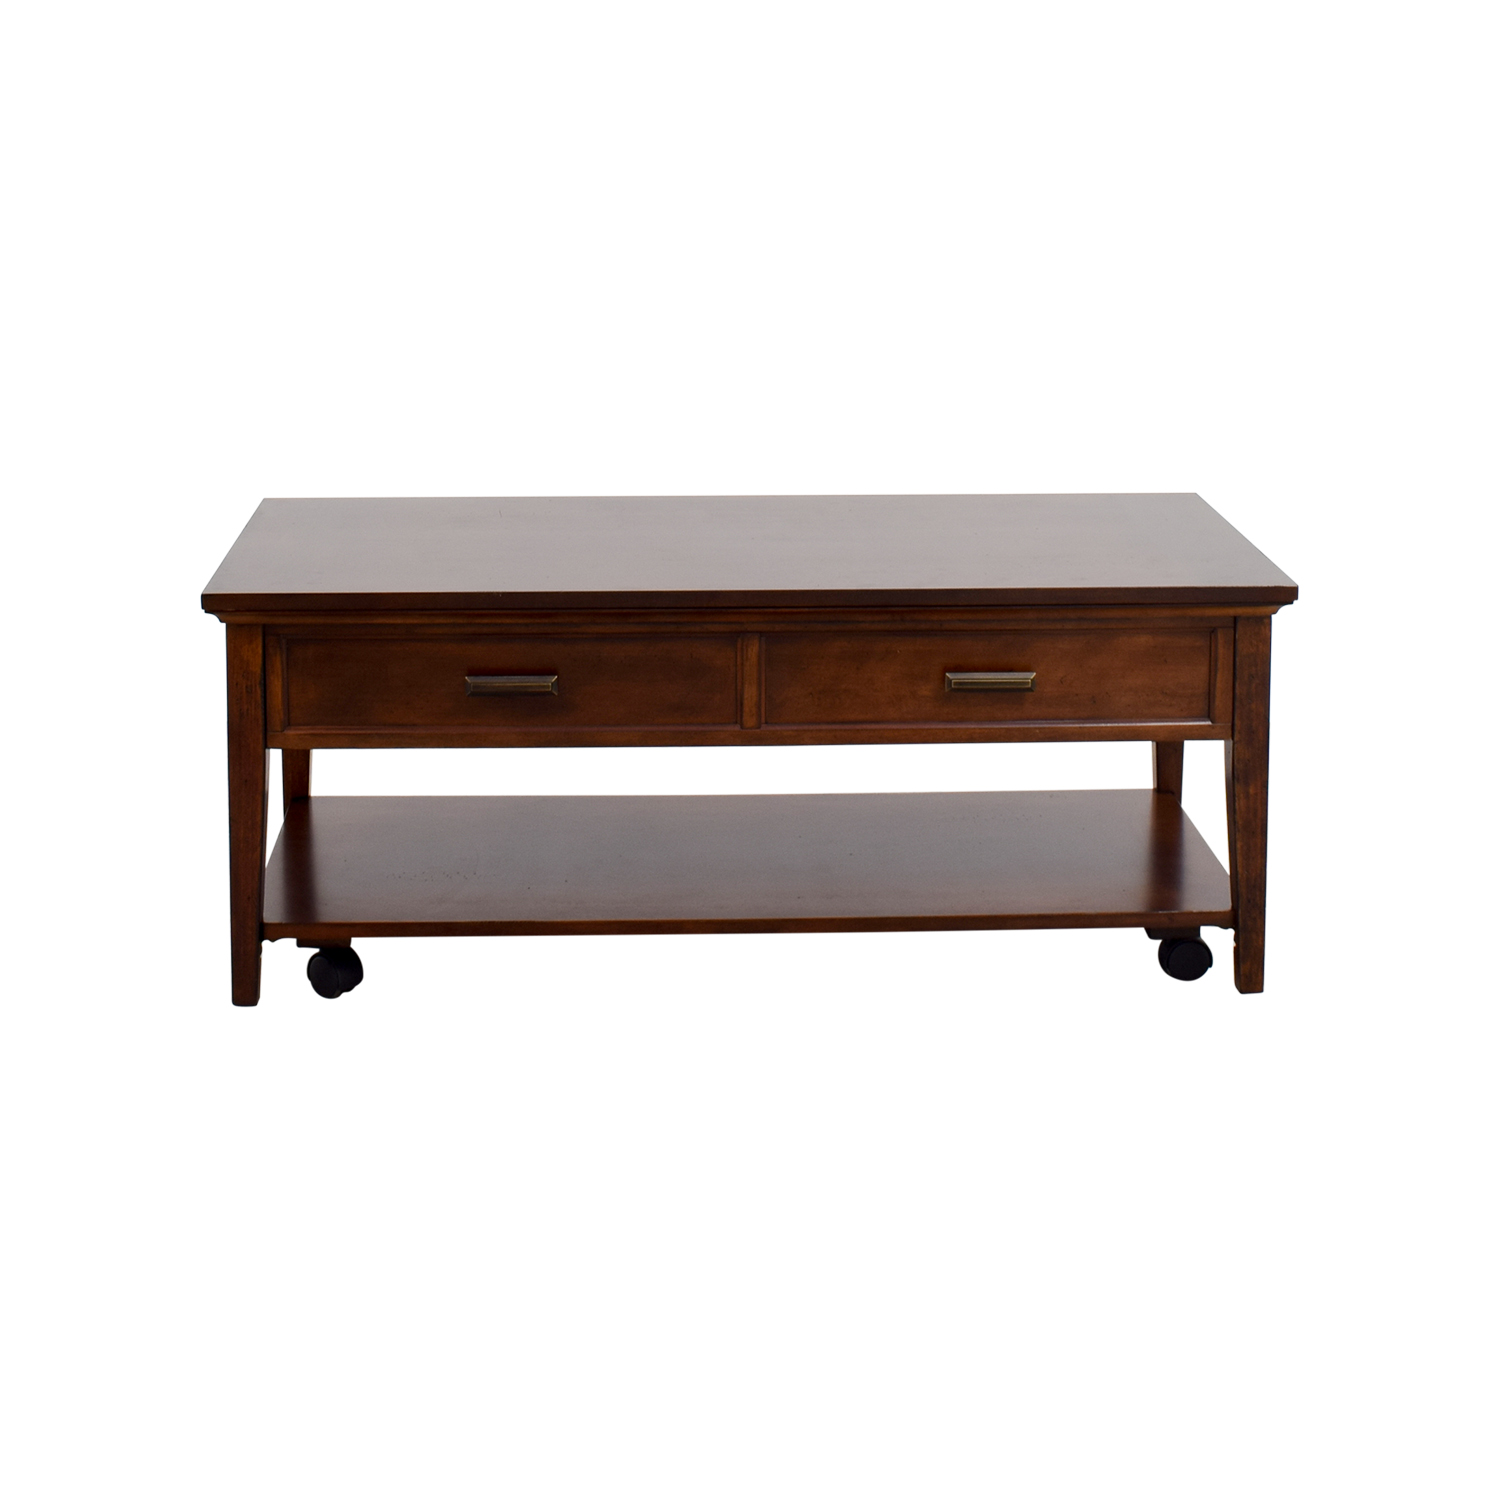 Raymour & Flanigan Raymour & Flanigan Harbour Bay Lift-top Coffee Table